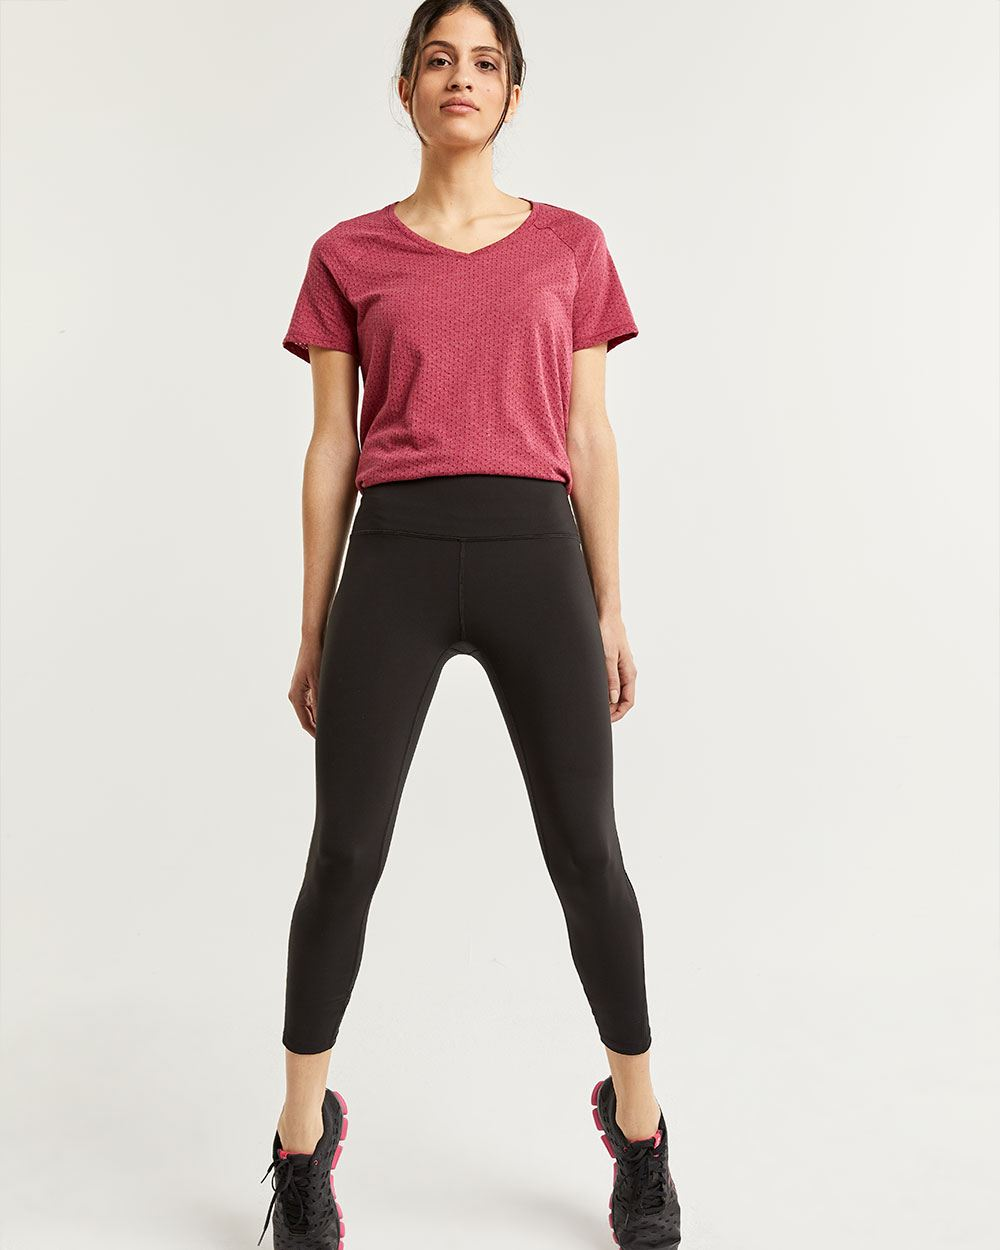 Cropped Black Leggings with Mesh Inserts Hyba